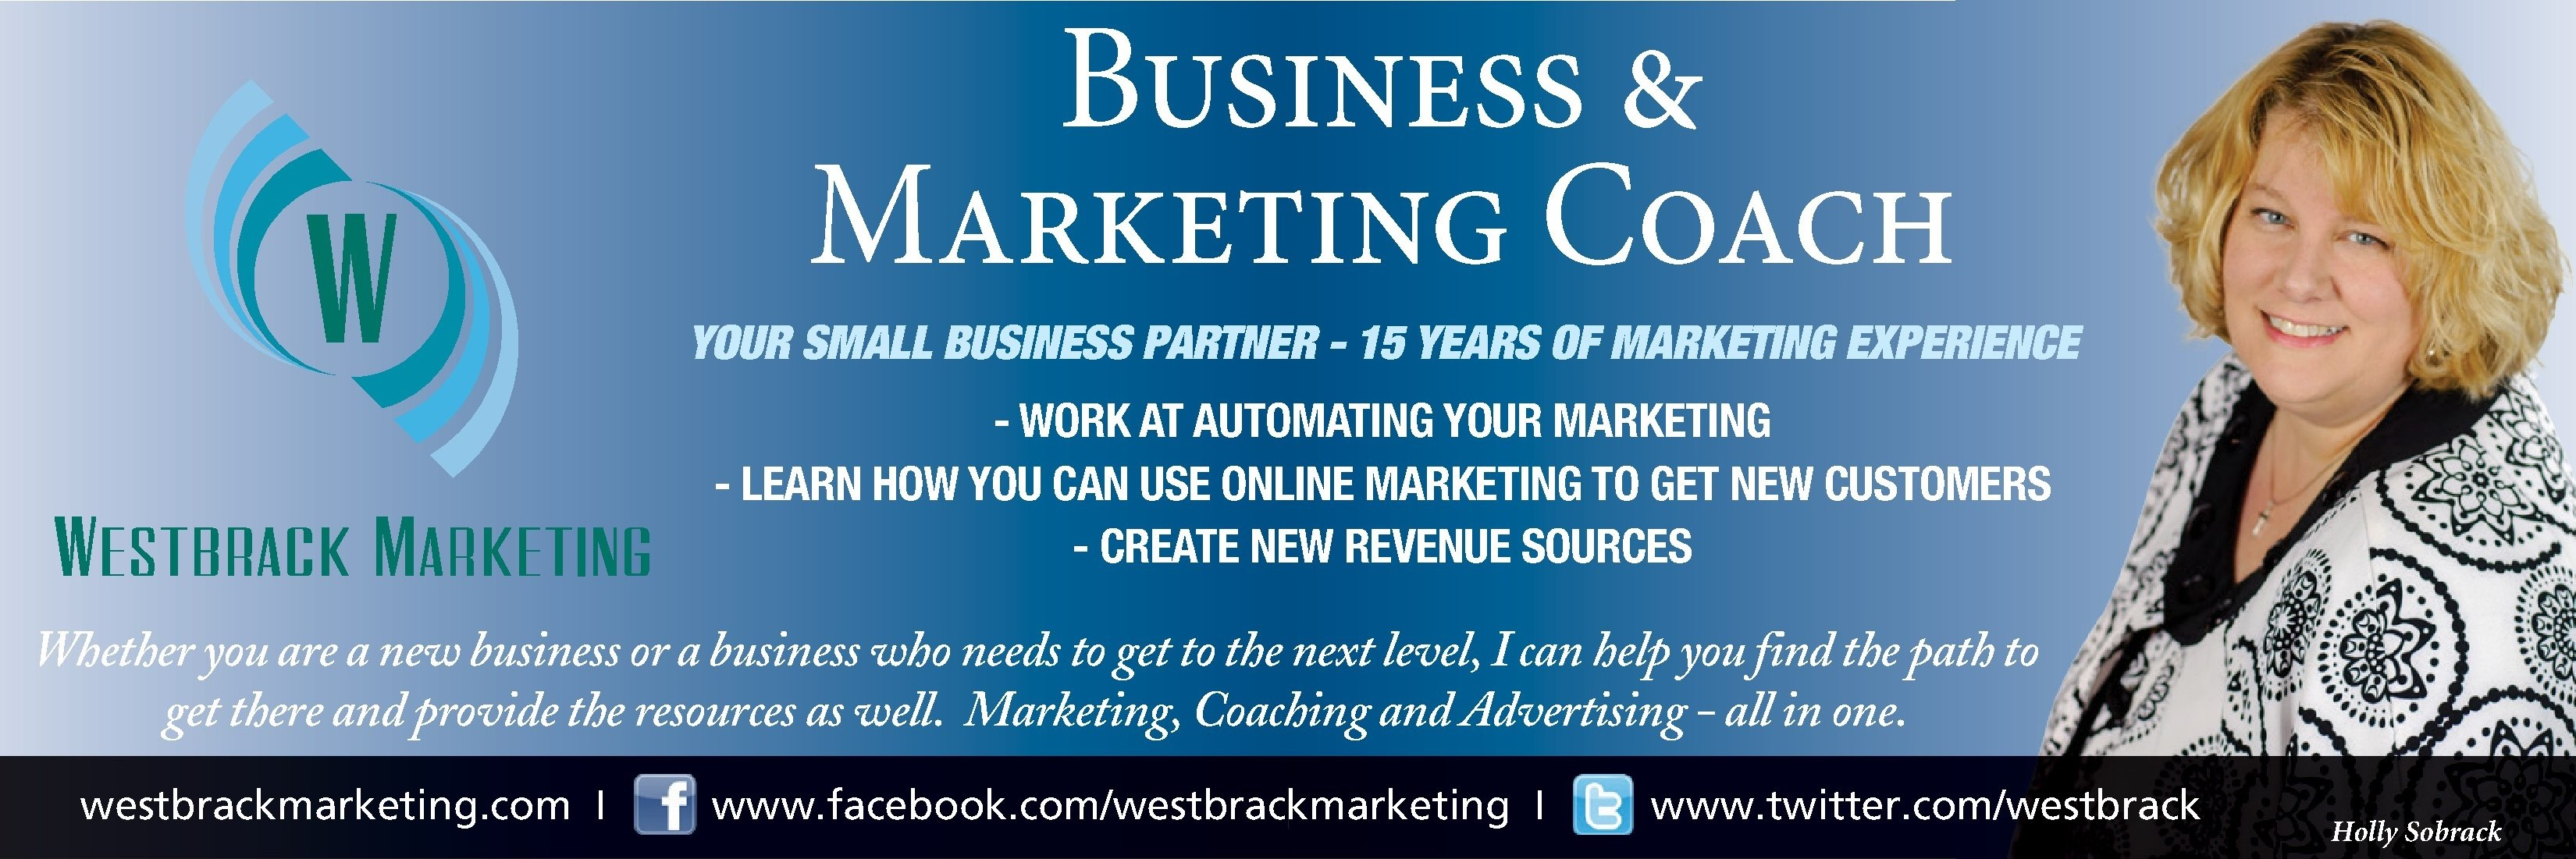 Image for Westbrack Marketing - Your small business partner!